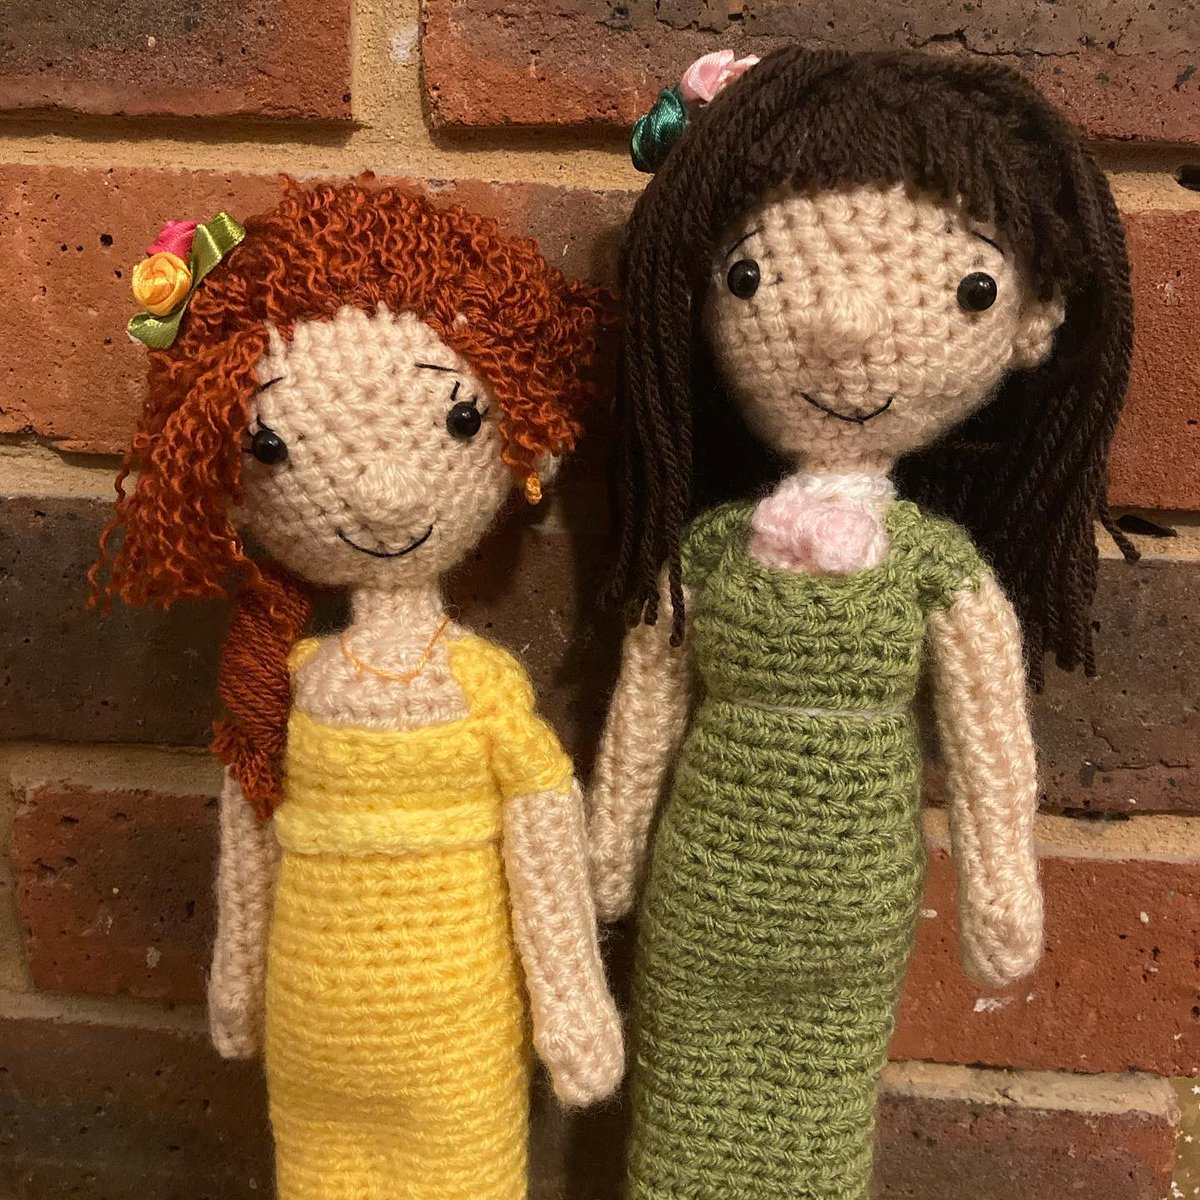 My latest #crochet creations 🤭 Meet Miss Penelope Featherington and Miss Eloise Bridgerton @nicolacoughlan @bridgerton